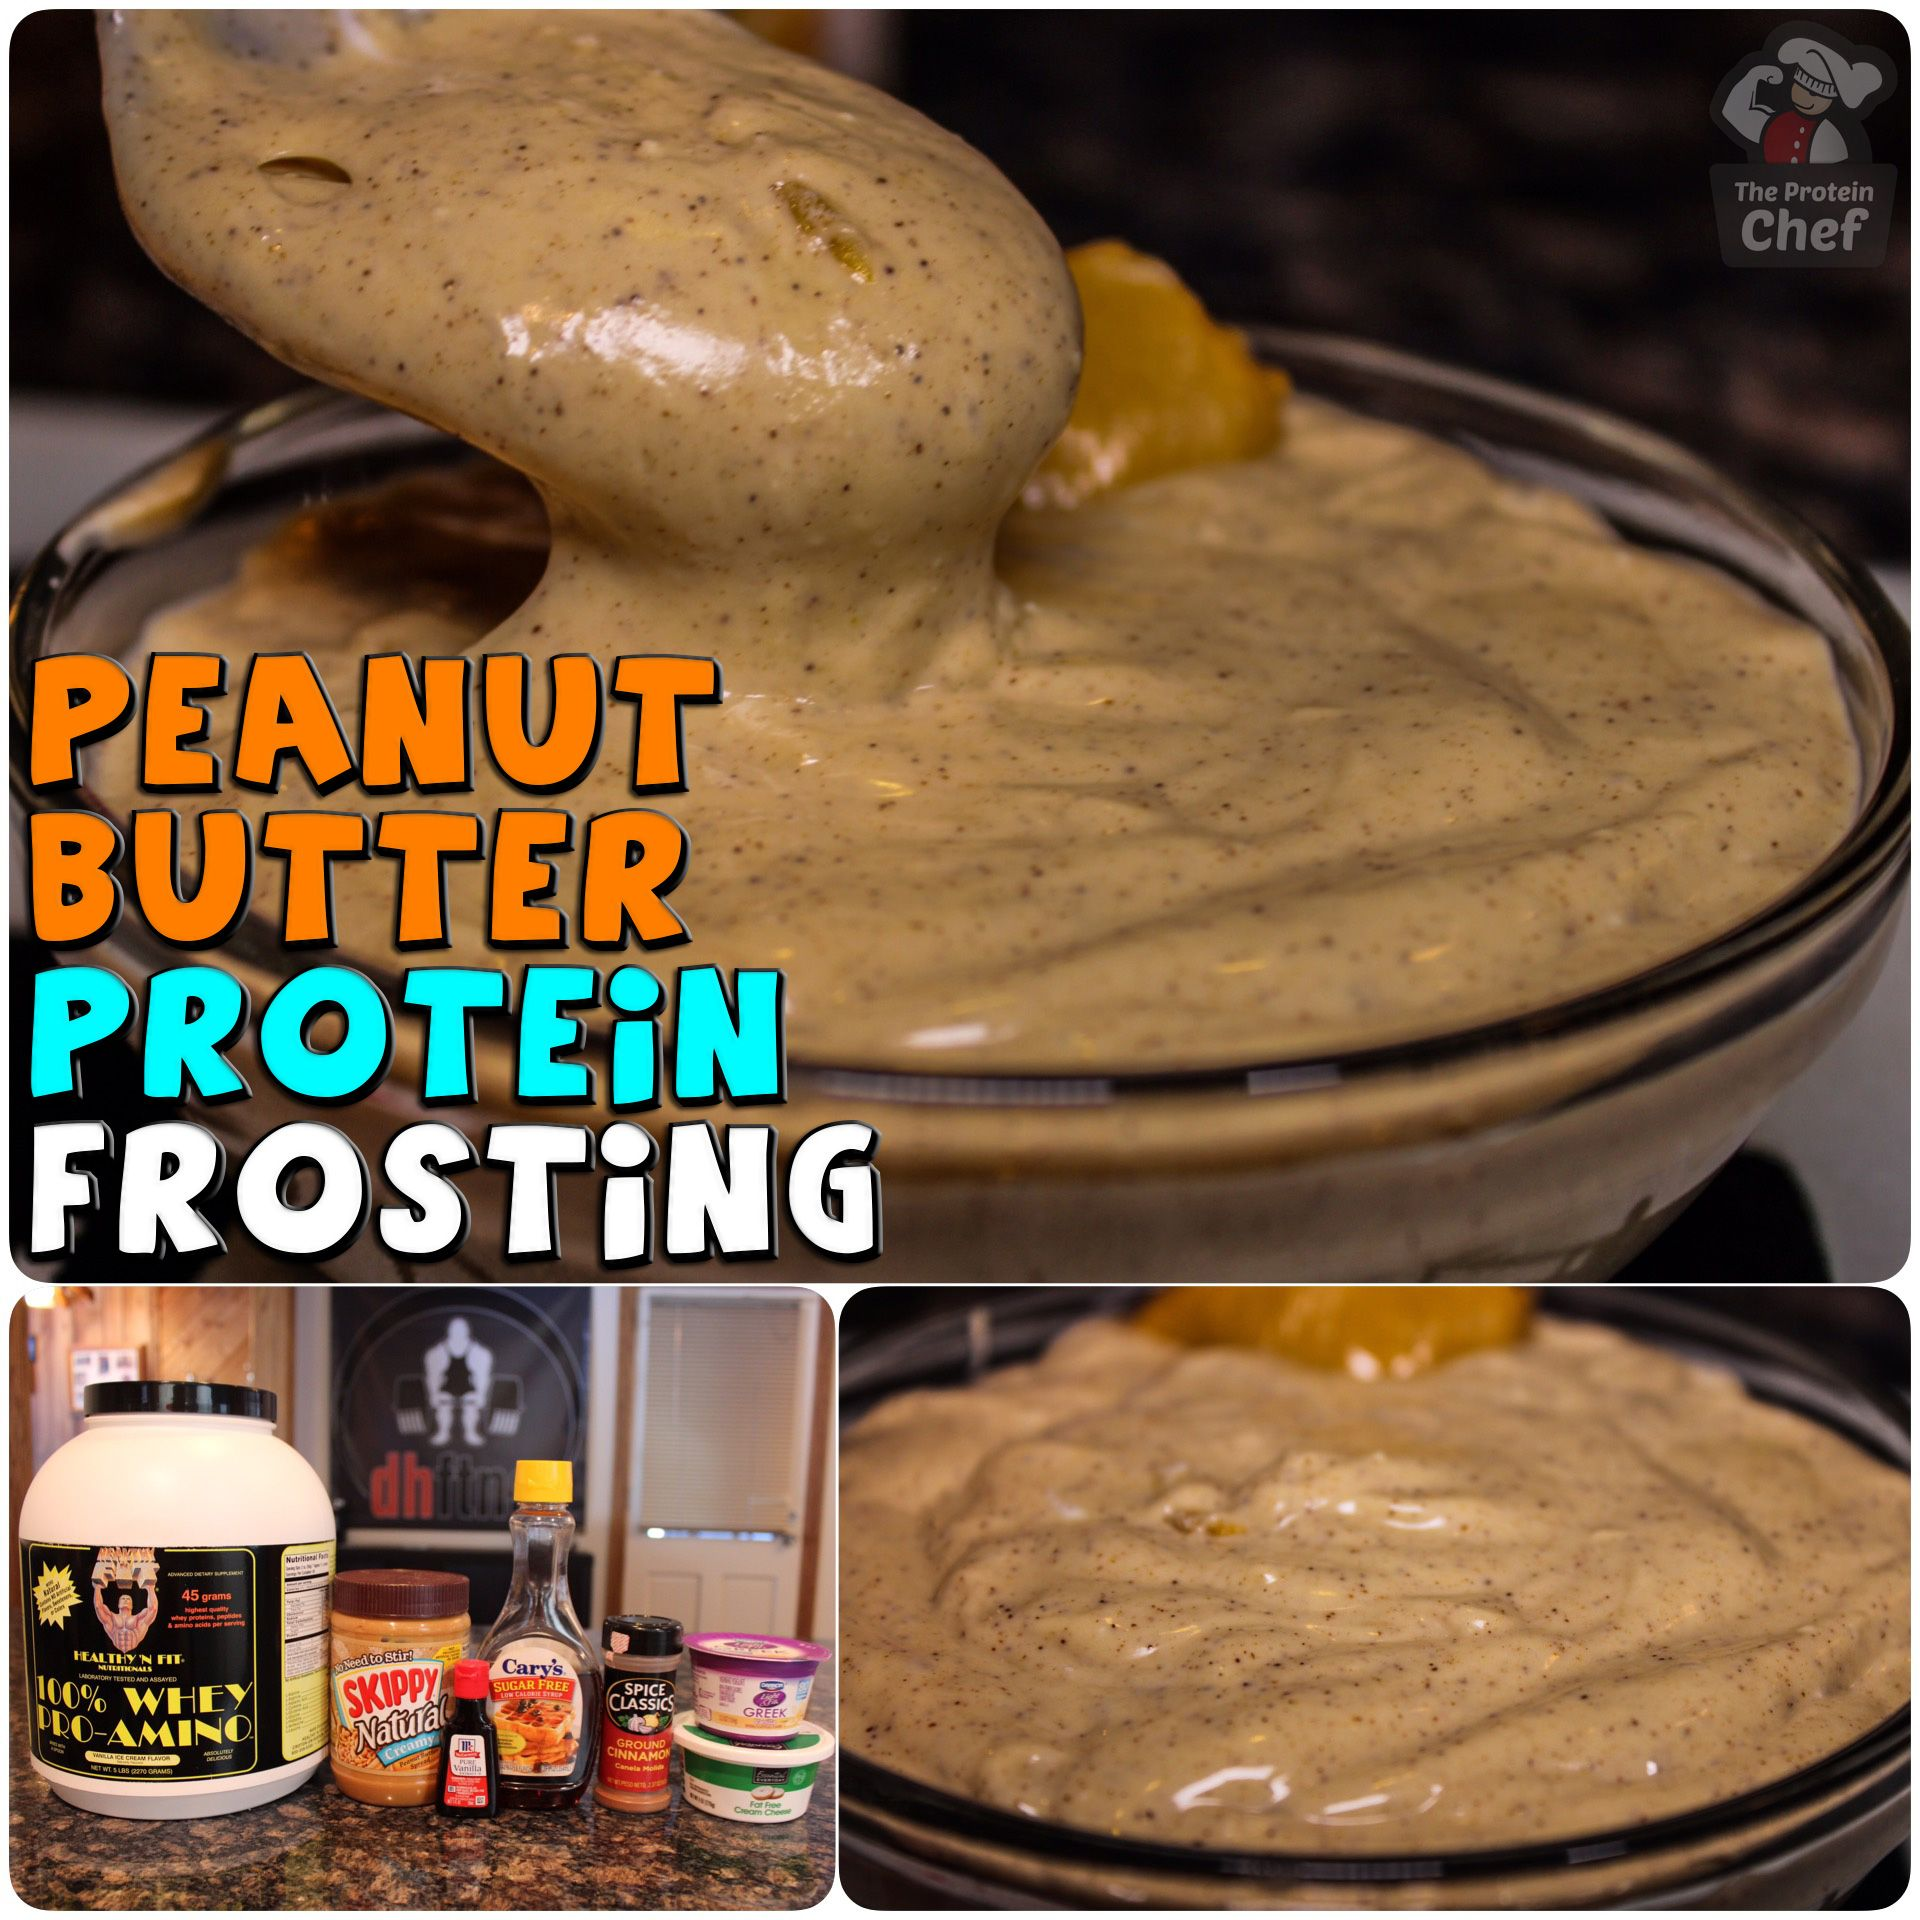 Peanut Butter Protein Frosting